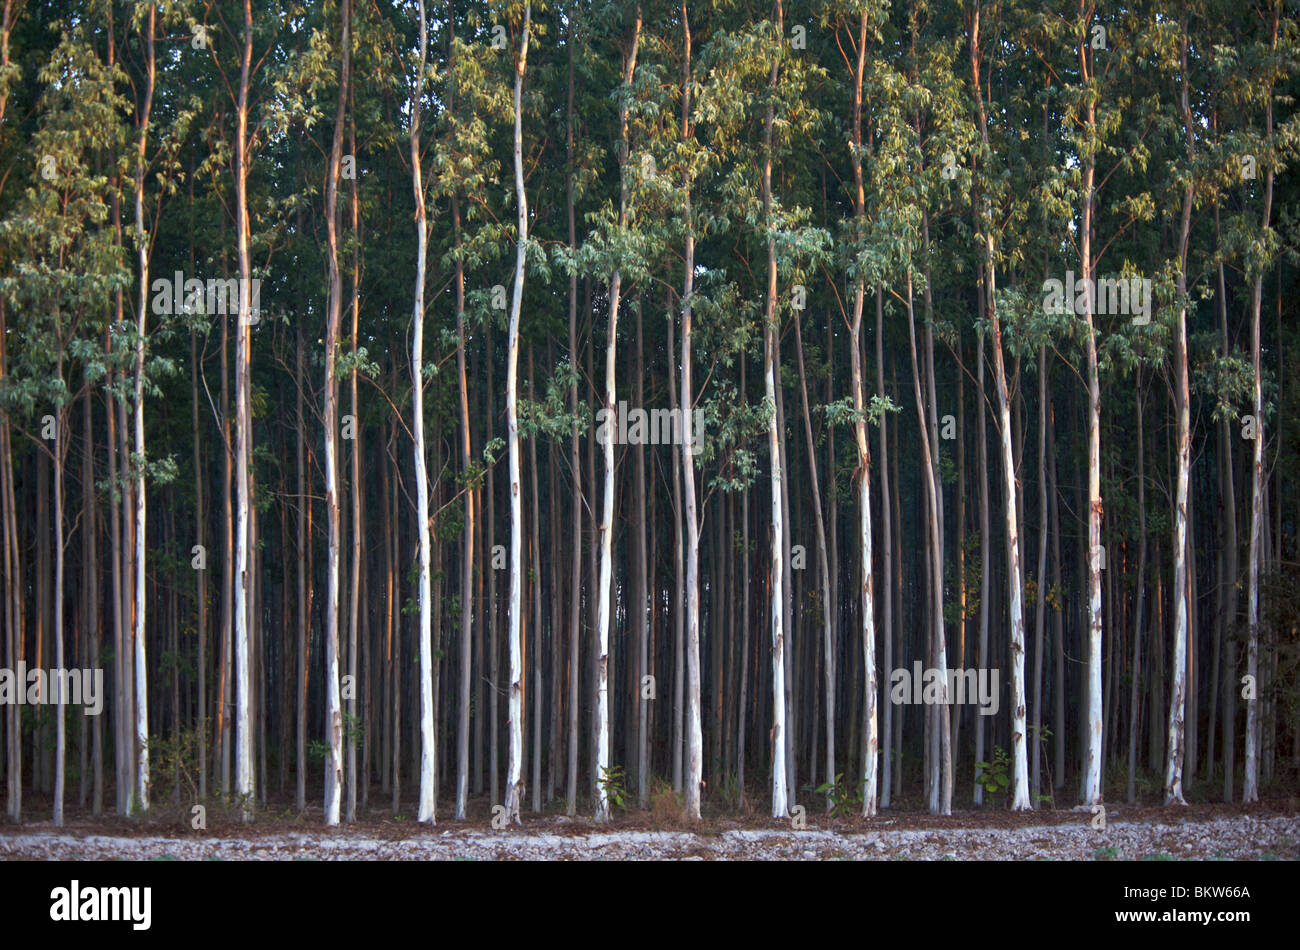 Stands of Eucalyptus trees being grown for paper pulp in Thailand. - Stock Image